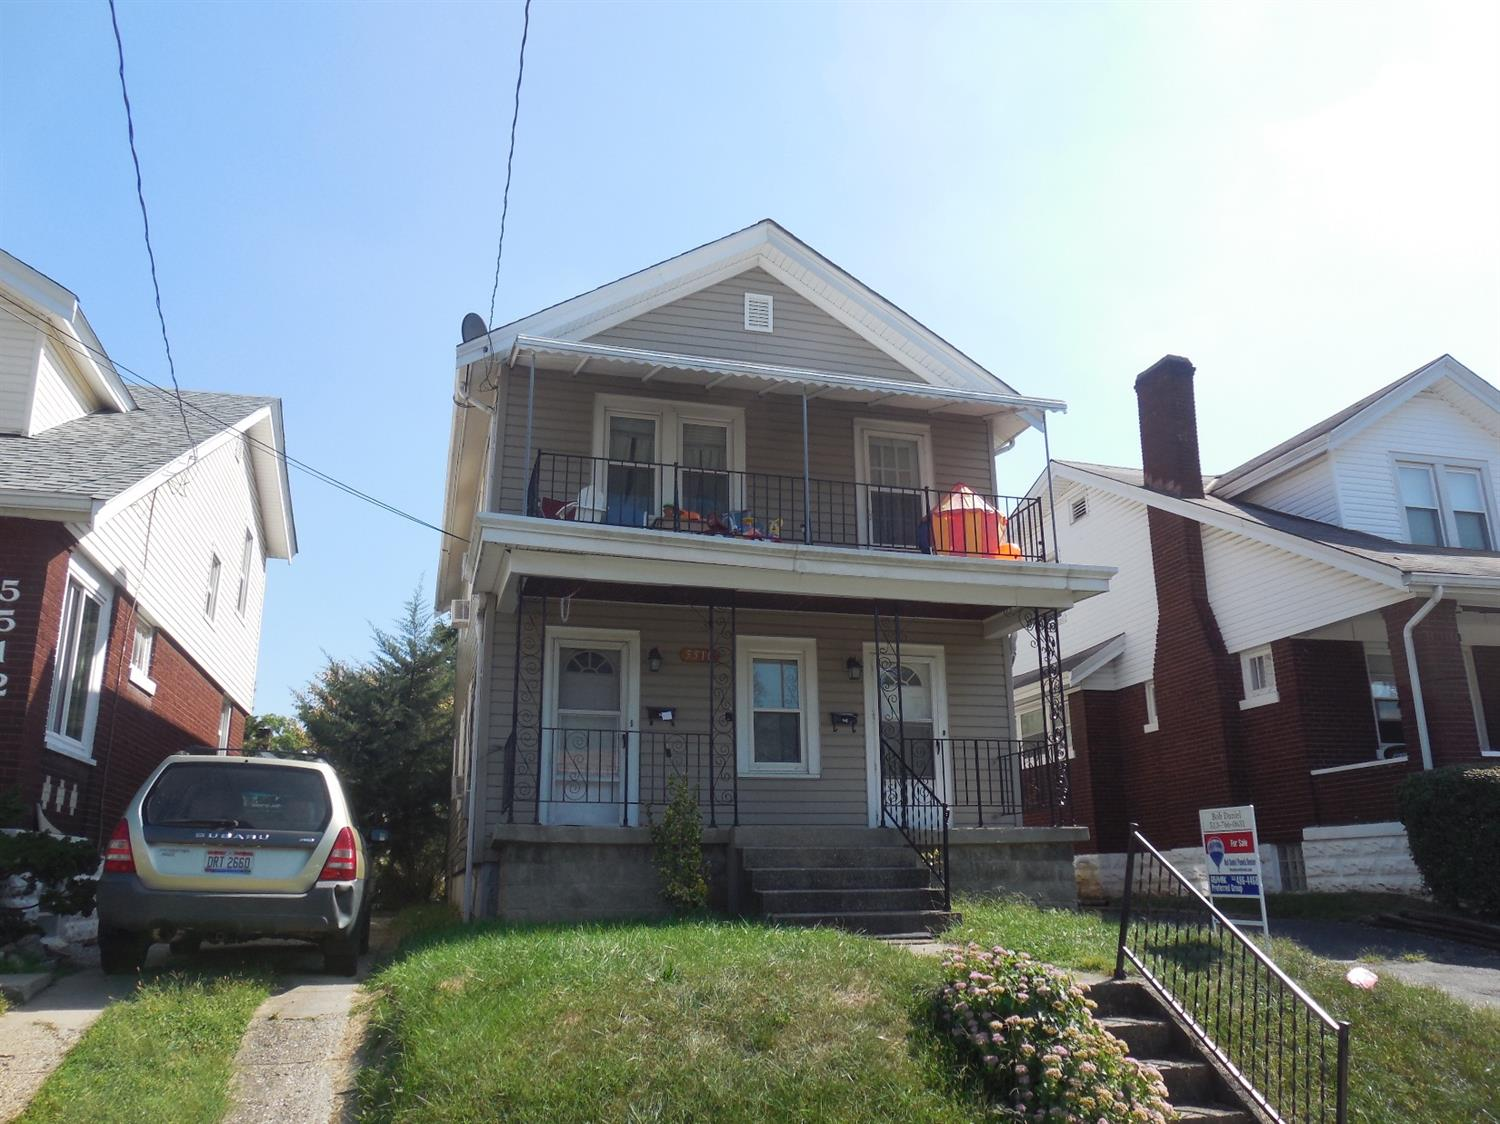 5510 Warren Ave Norwood Oh 45212 Listing Details Mls